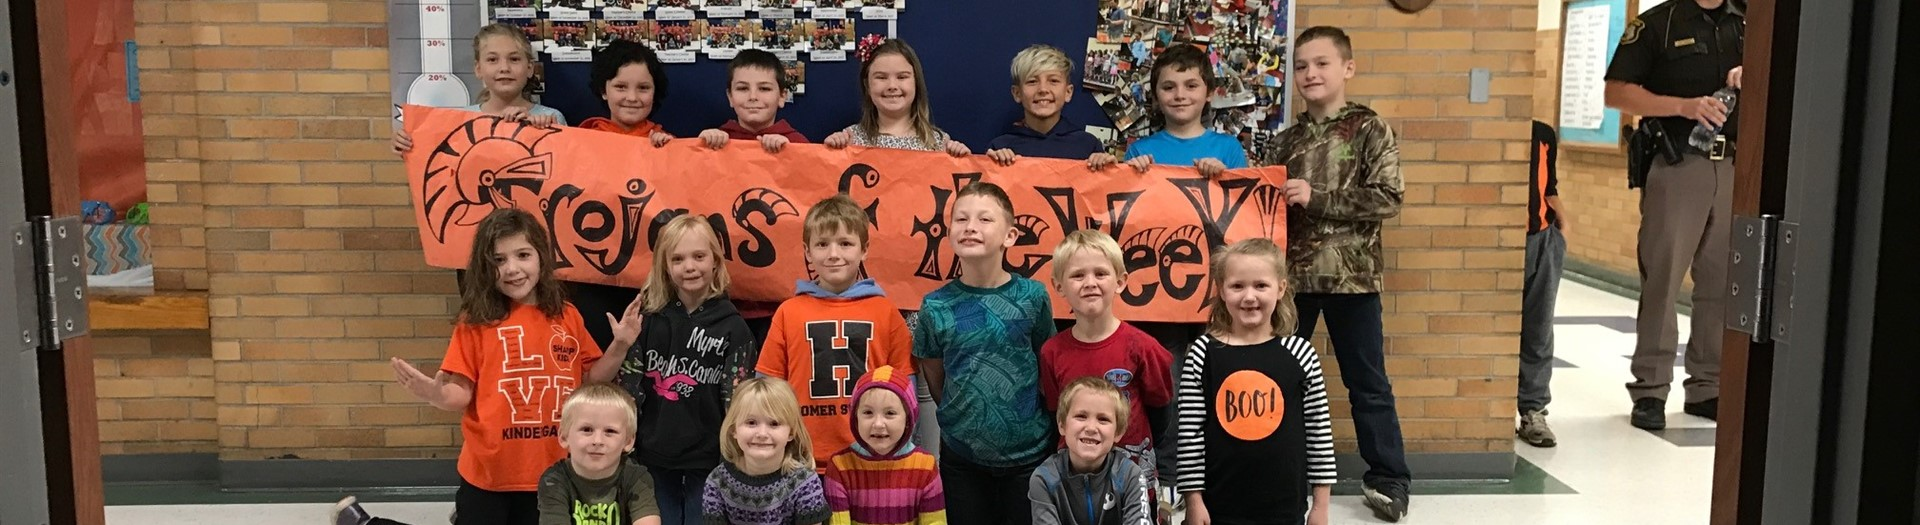 "Elementary students in three rows to be recognized as ""Trojans of the Week"""